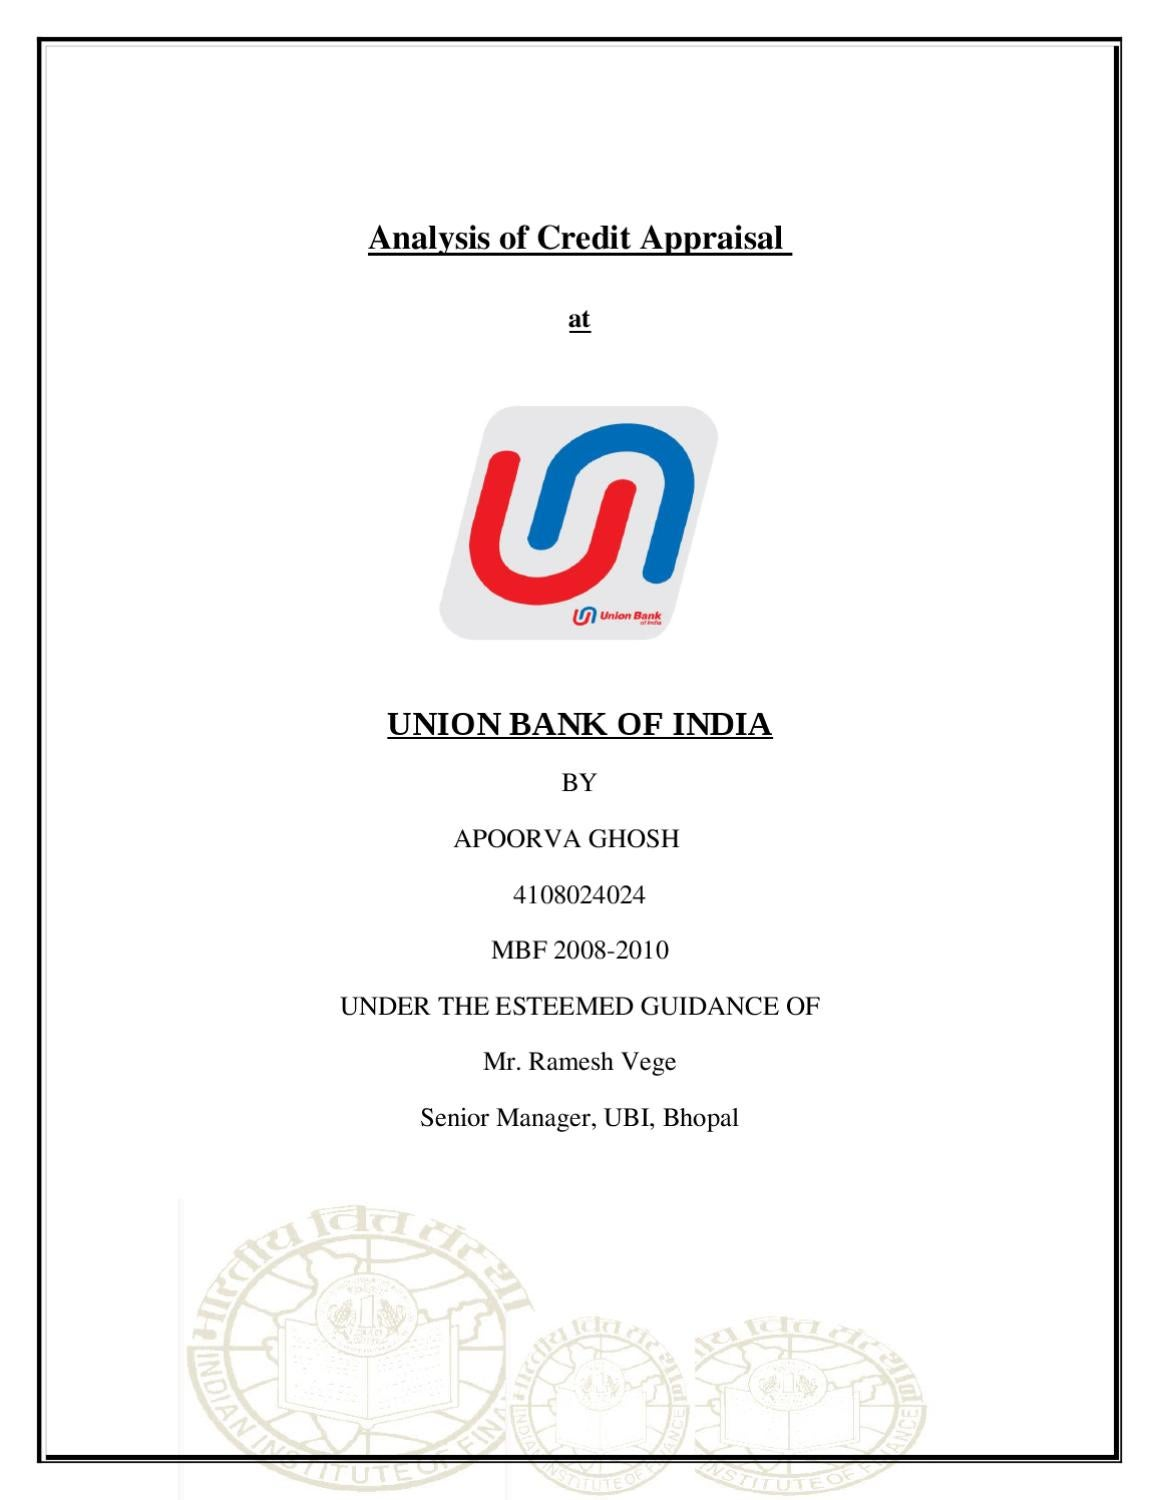 credit appraisal in punjab national bank Pre sanction credit appraisal at punjab national bankpdf pre sanction credit appraisal at punjab national bank you wanna get your terrific publication of pre sanction credit appraisal at.